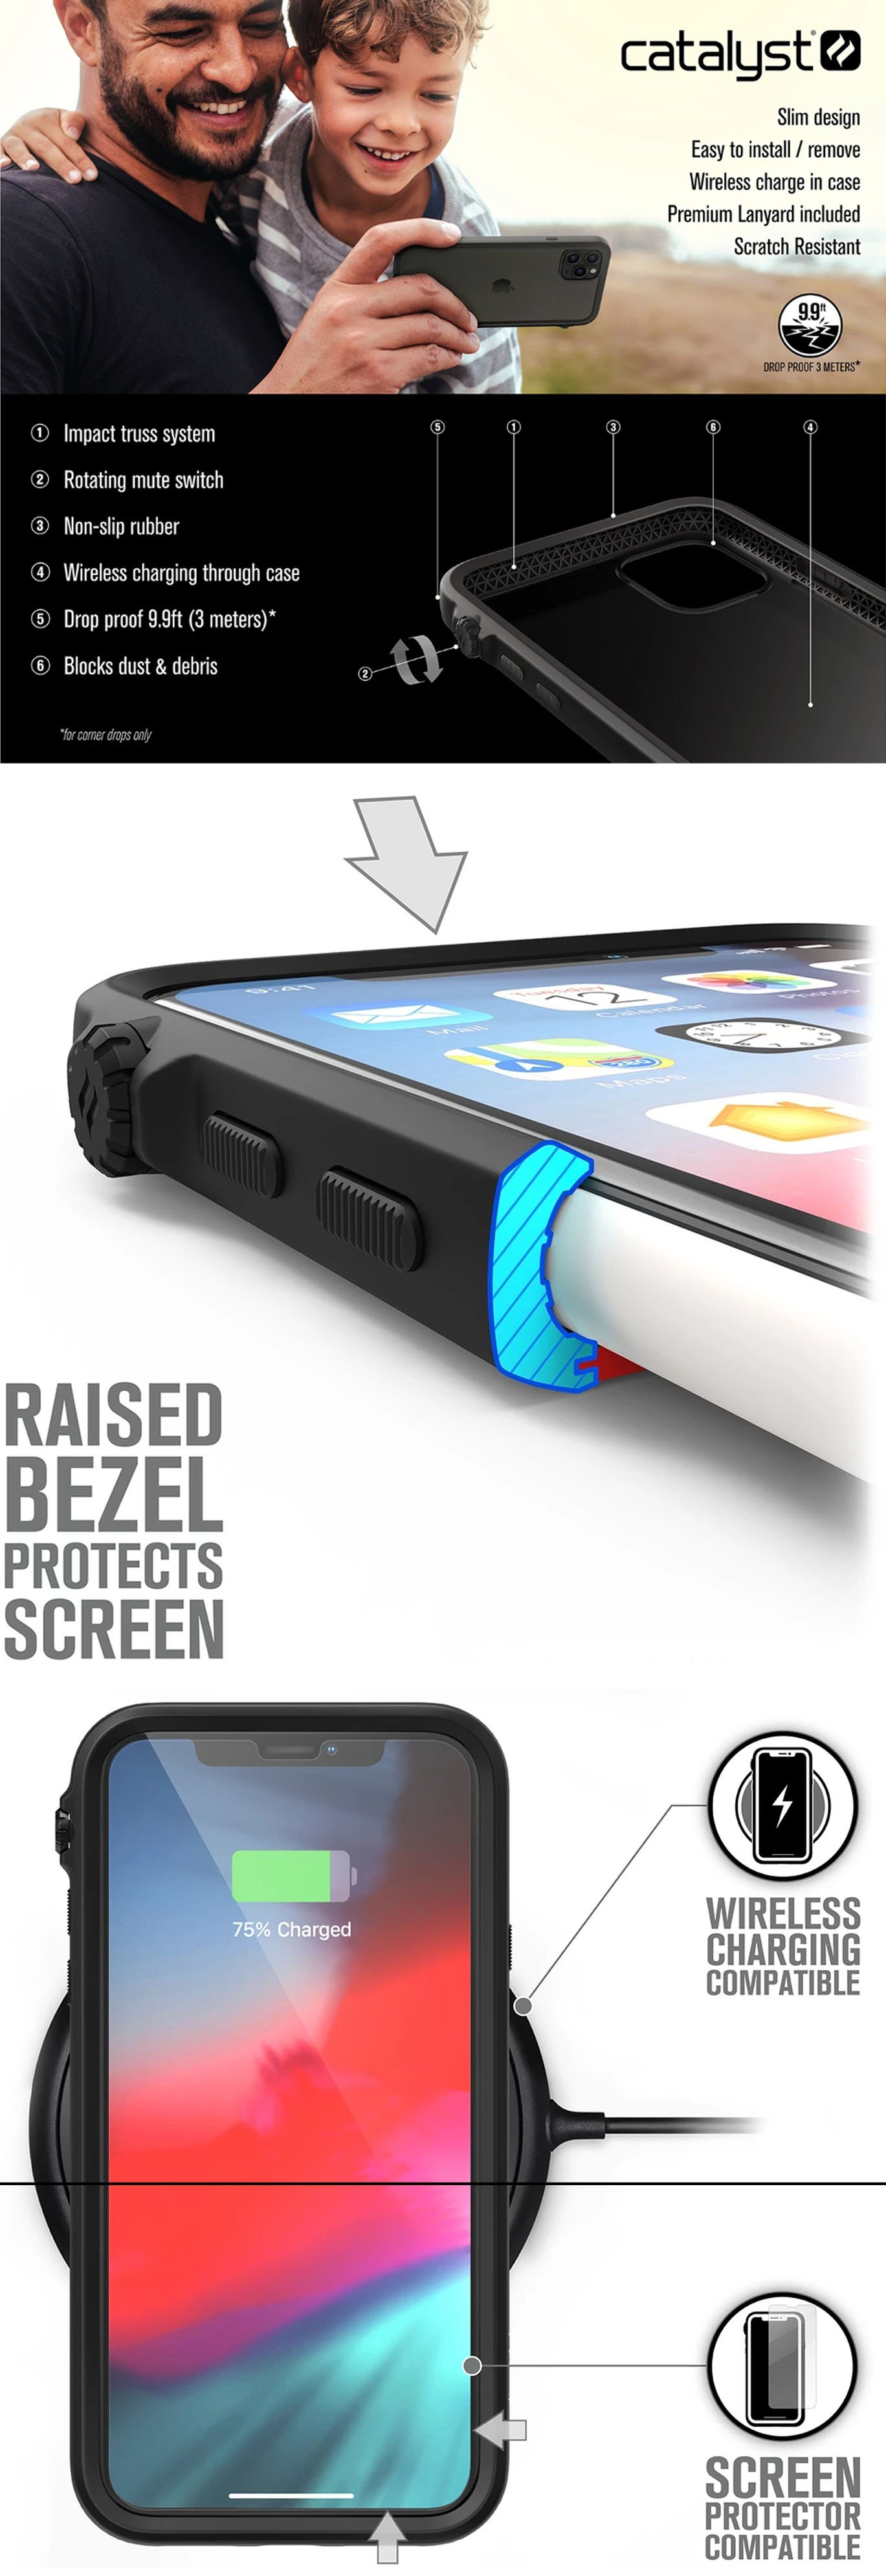 /catalyst/xx00xx/1-des-fx-catalyst-impact-protection-case-iphone-11-pro-max-stealth-black-color-xx00xx-malaysia-authorised-retailer